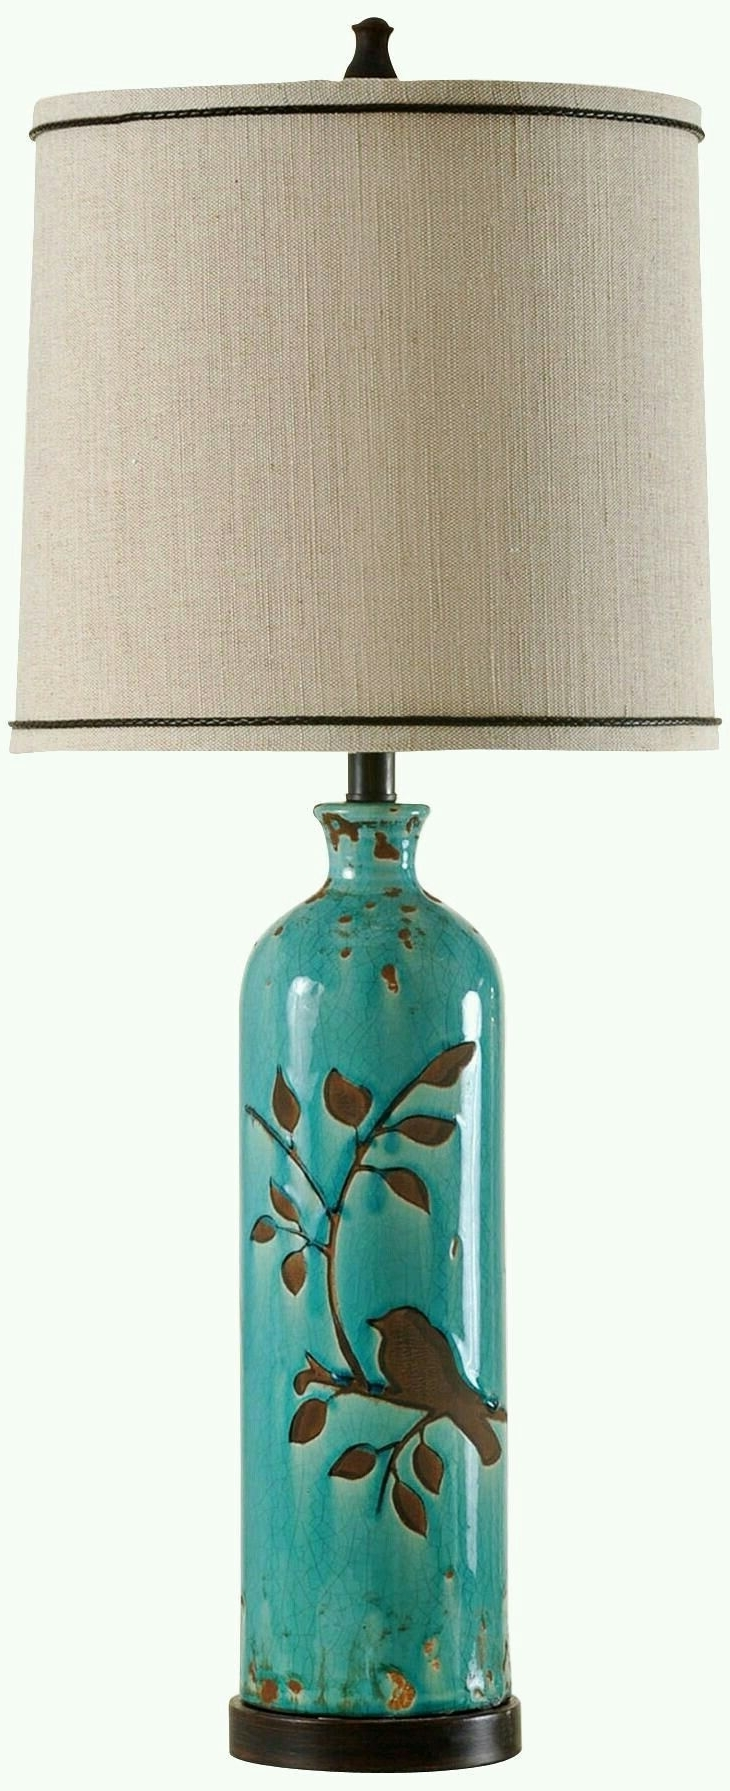 Ceramic Living Room Table Lamps Regarding Widely Used Pinguzin Oz On Iki (View 5 of 20)